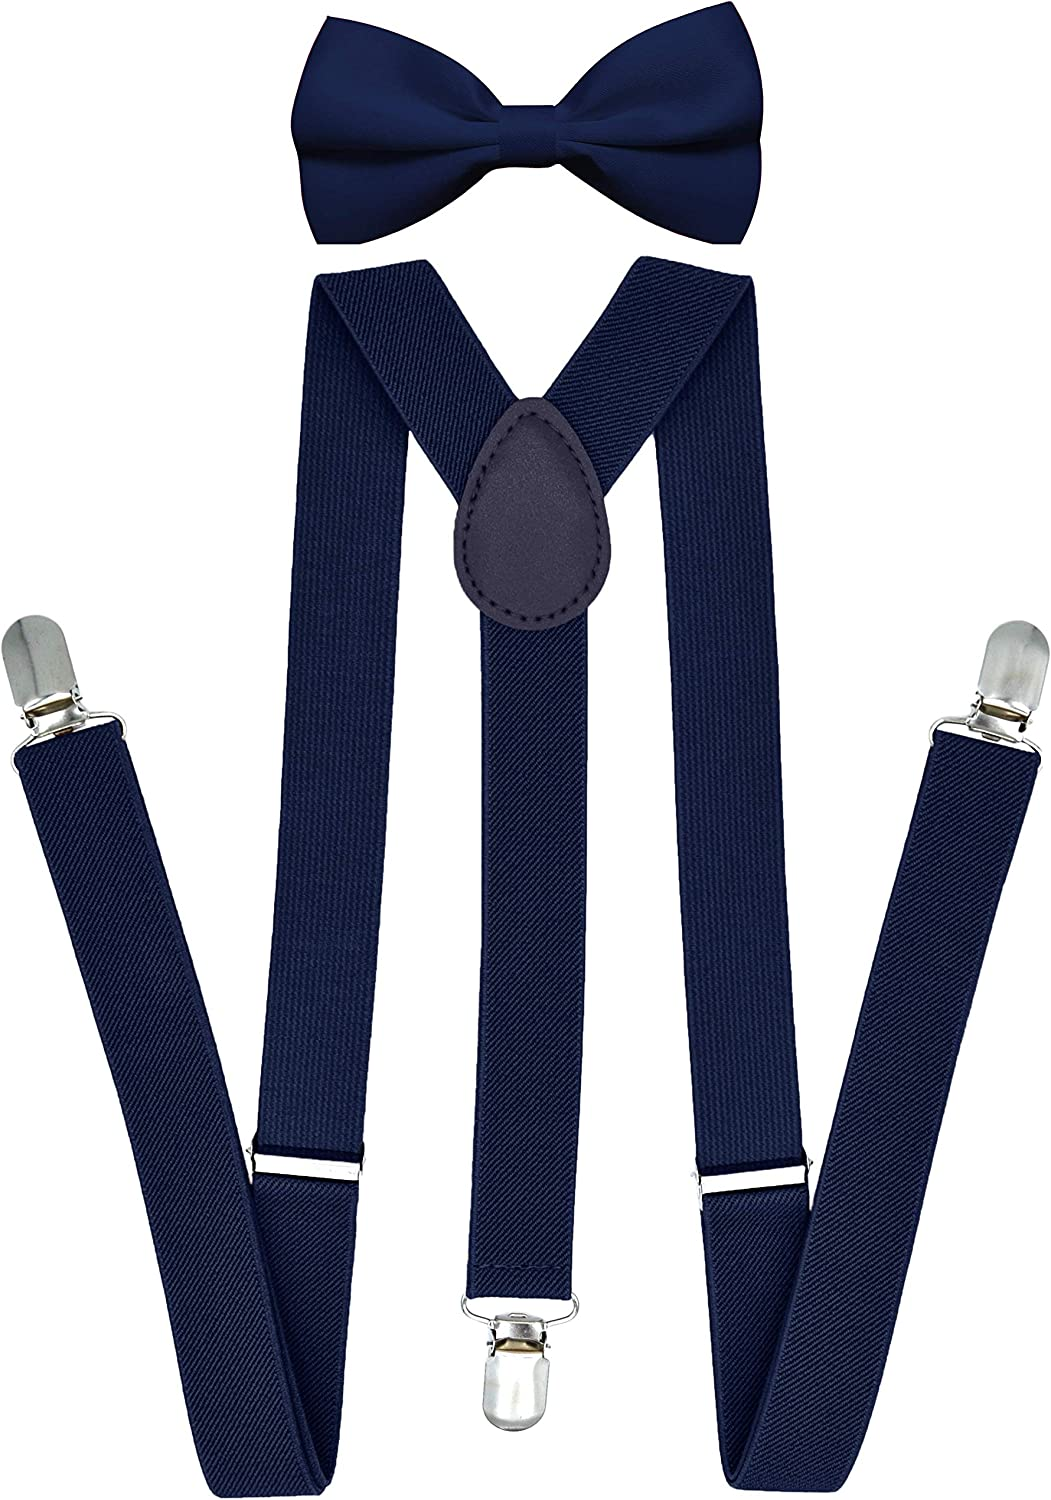 Trilece Suspenders for Men with Bow Tie Set Adjustable 1 inch Wide Y Shape Wedding Suit Accessories Strong Metal Clips